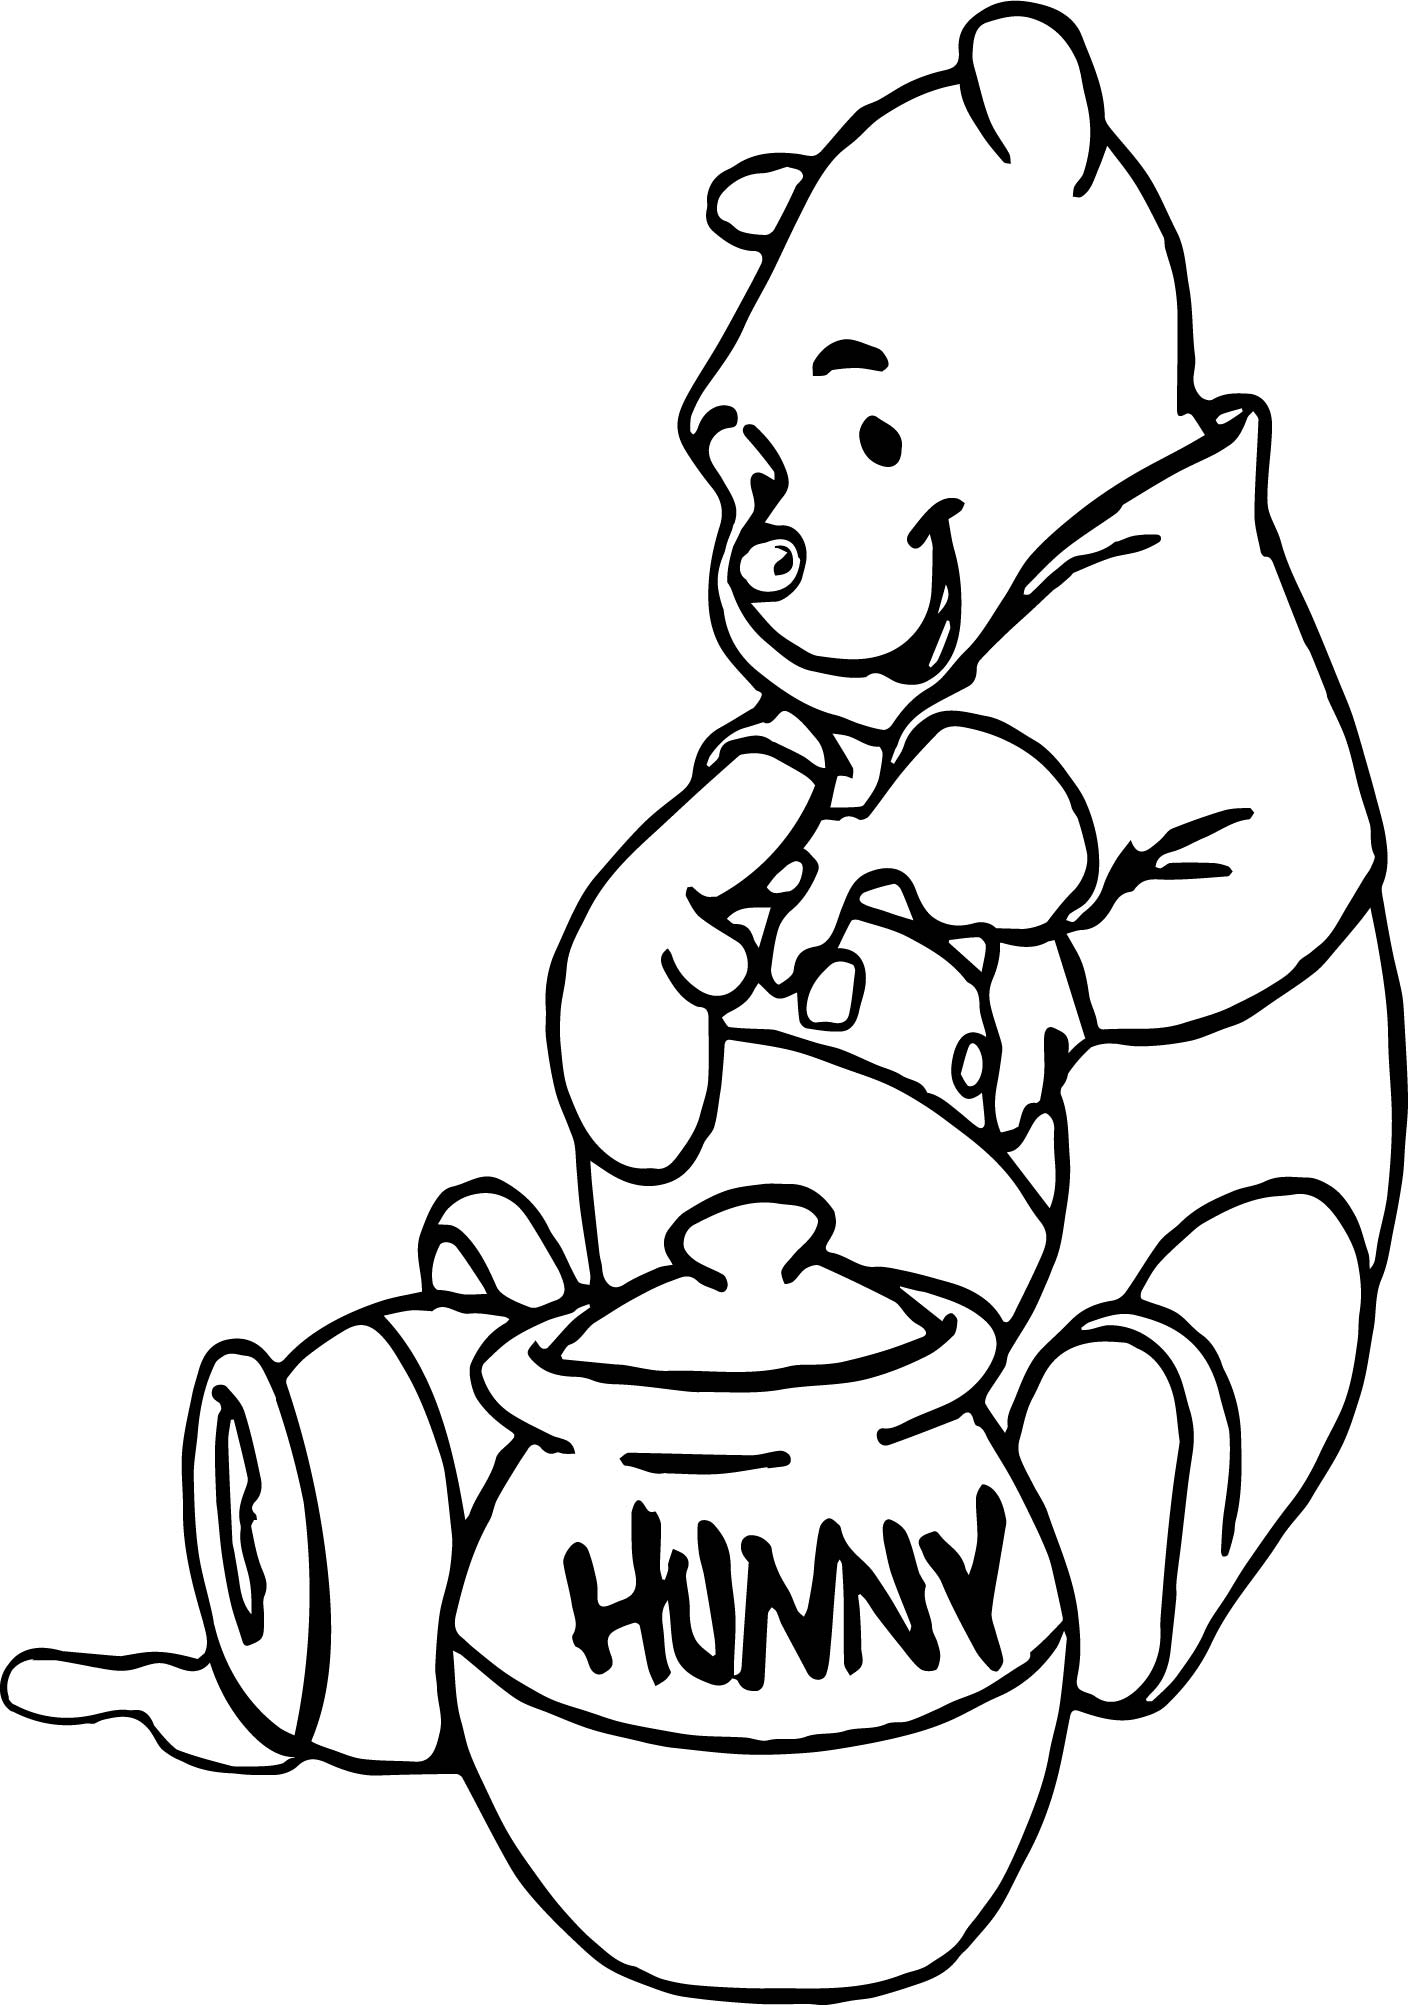 Winnie The Pooh Eating Hunny Coloring Page